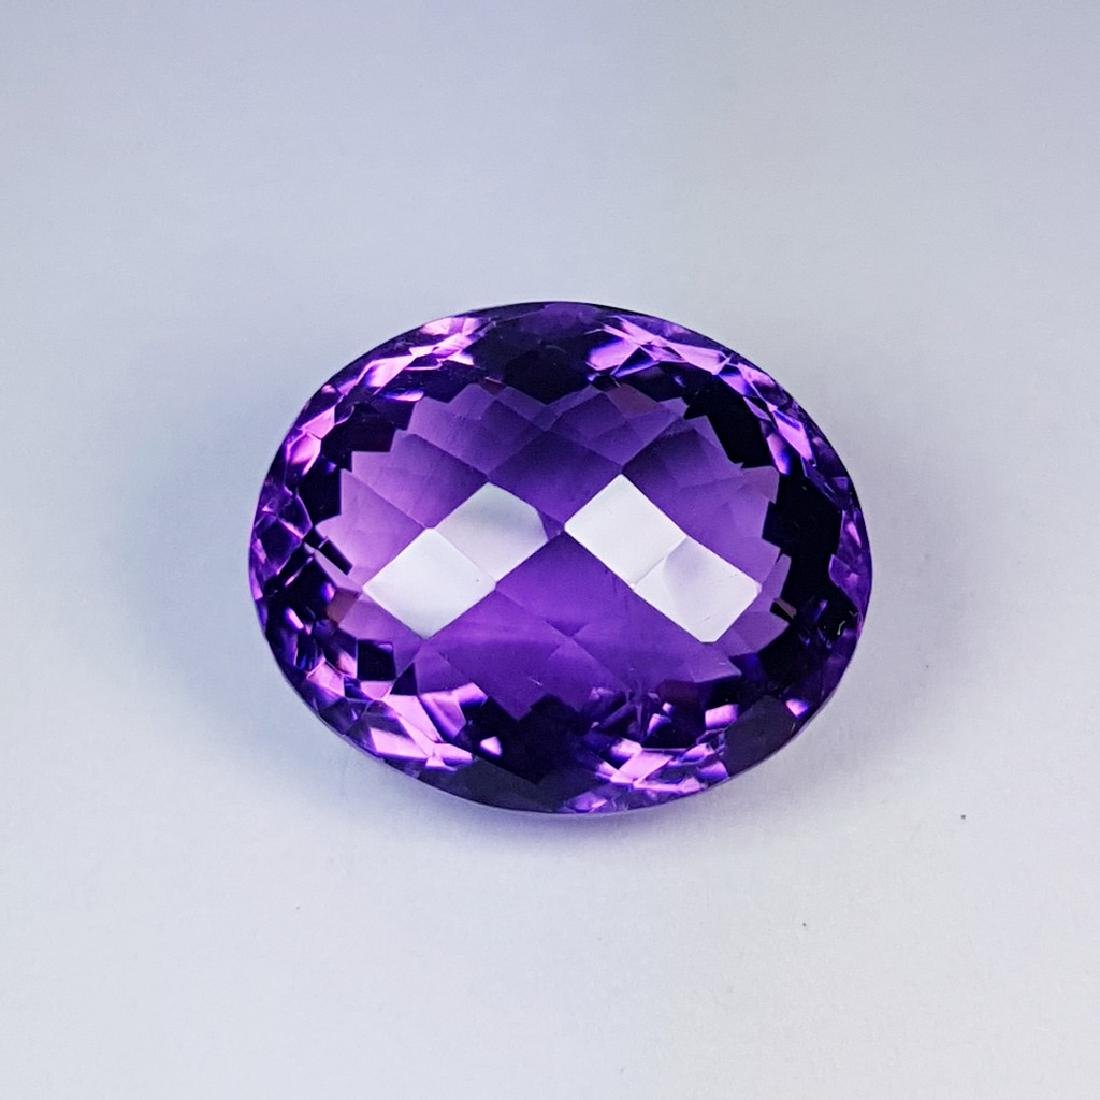 Natural Amethyst - 15.88 ct